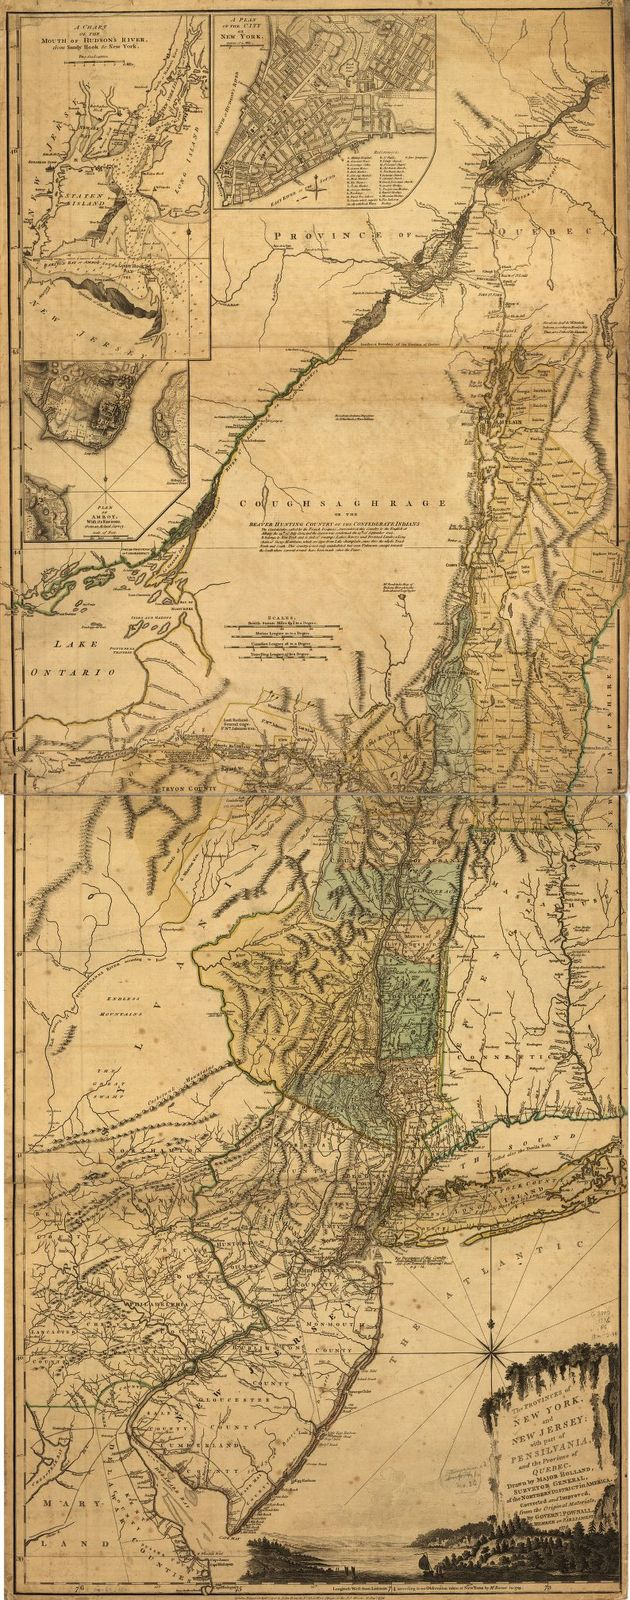 The provinces of New York and New Jersey; with part of Pensilvania, and the province of Quebec.